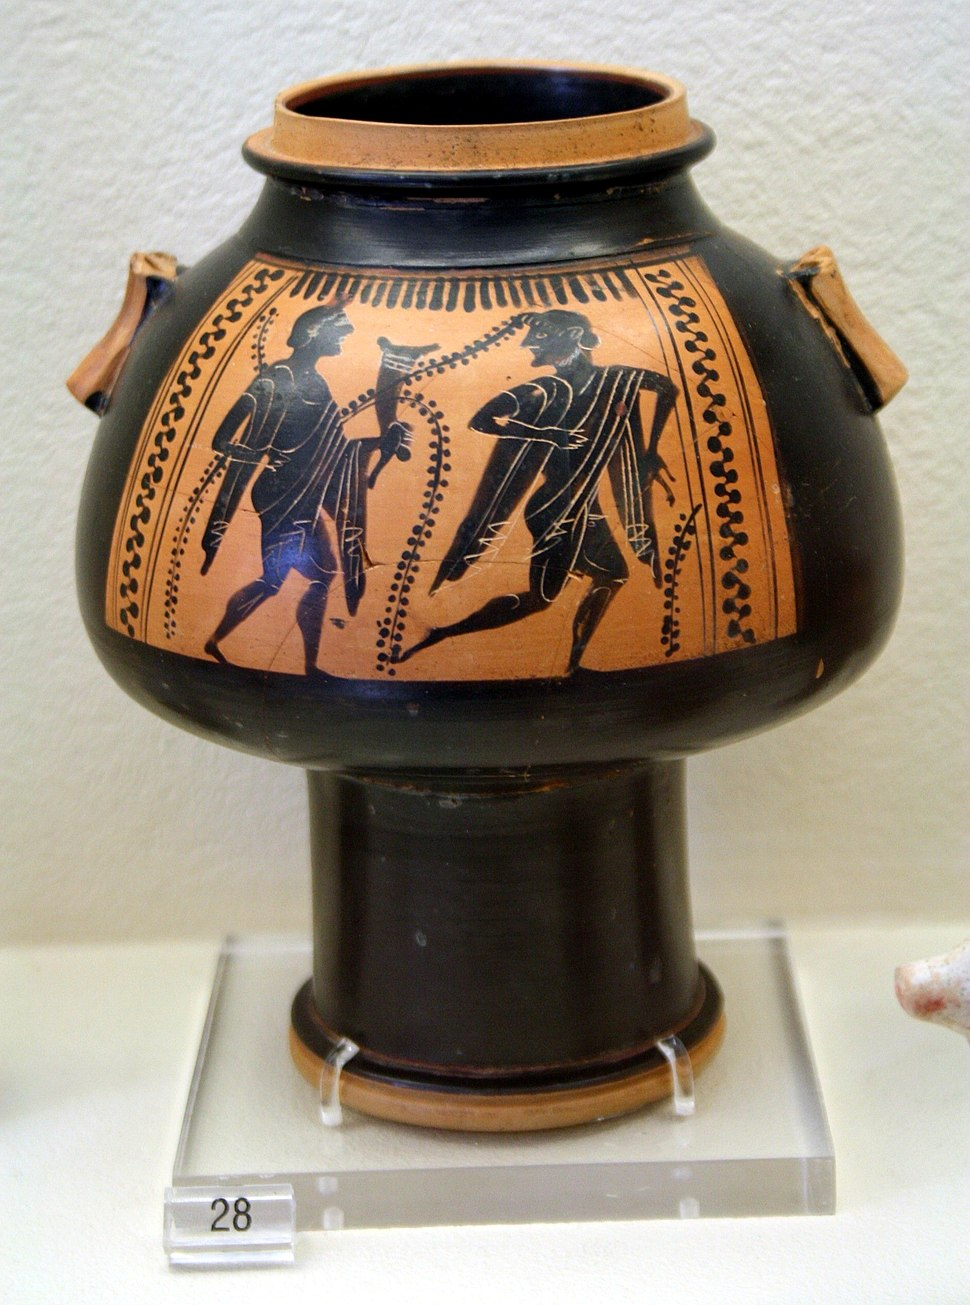 Pottery of ancient greece howling pixel making greek vases produced by the j paul getty museum hosted at smarthistory reviewsmspy